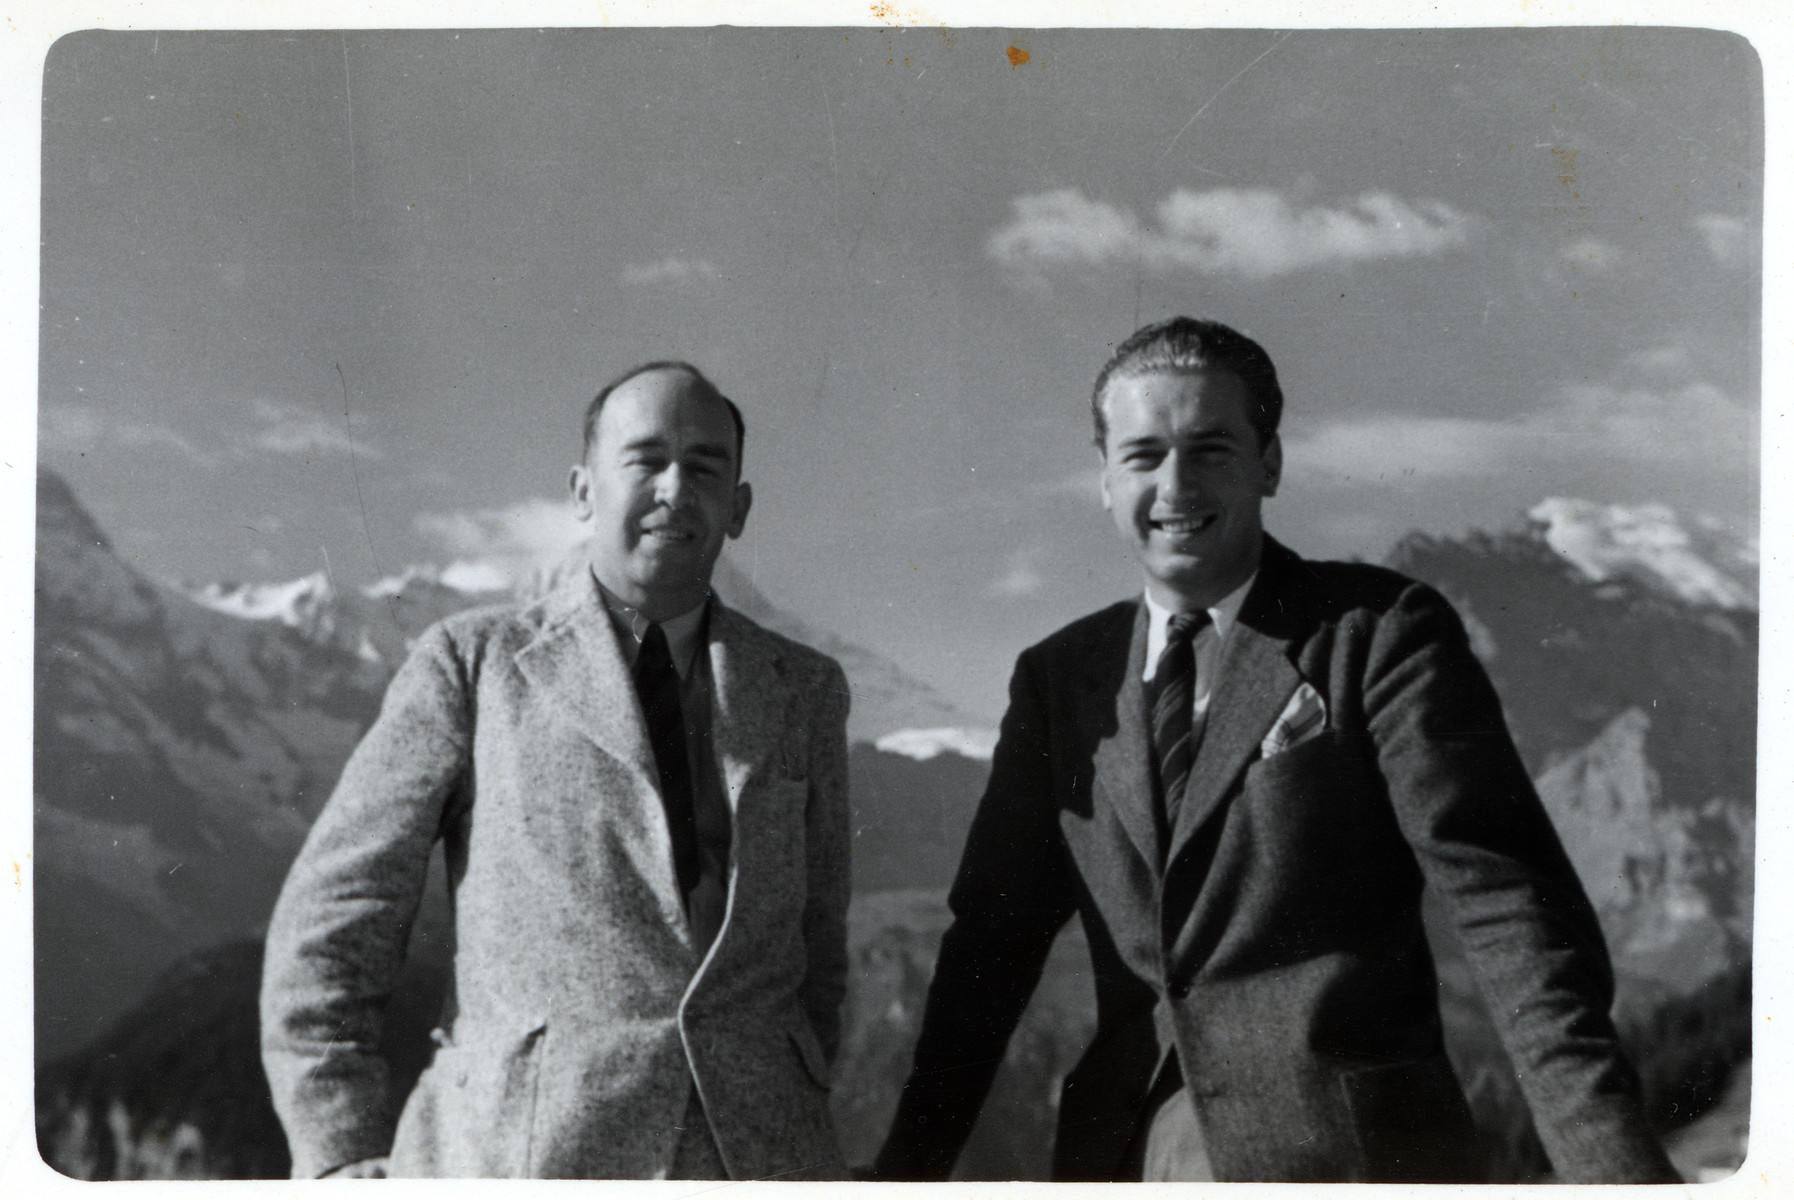 Julien Bryan poses with another man in an unknown location [the Alps may be in the background].